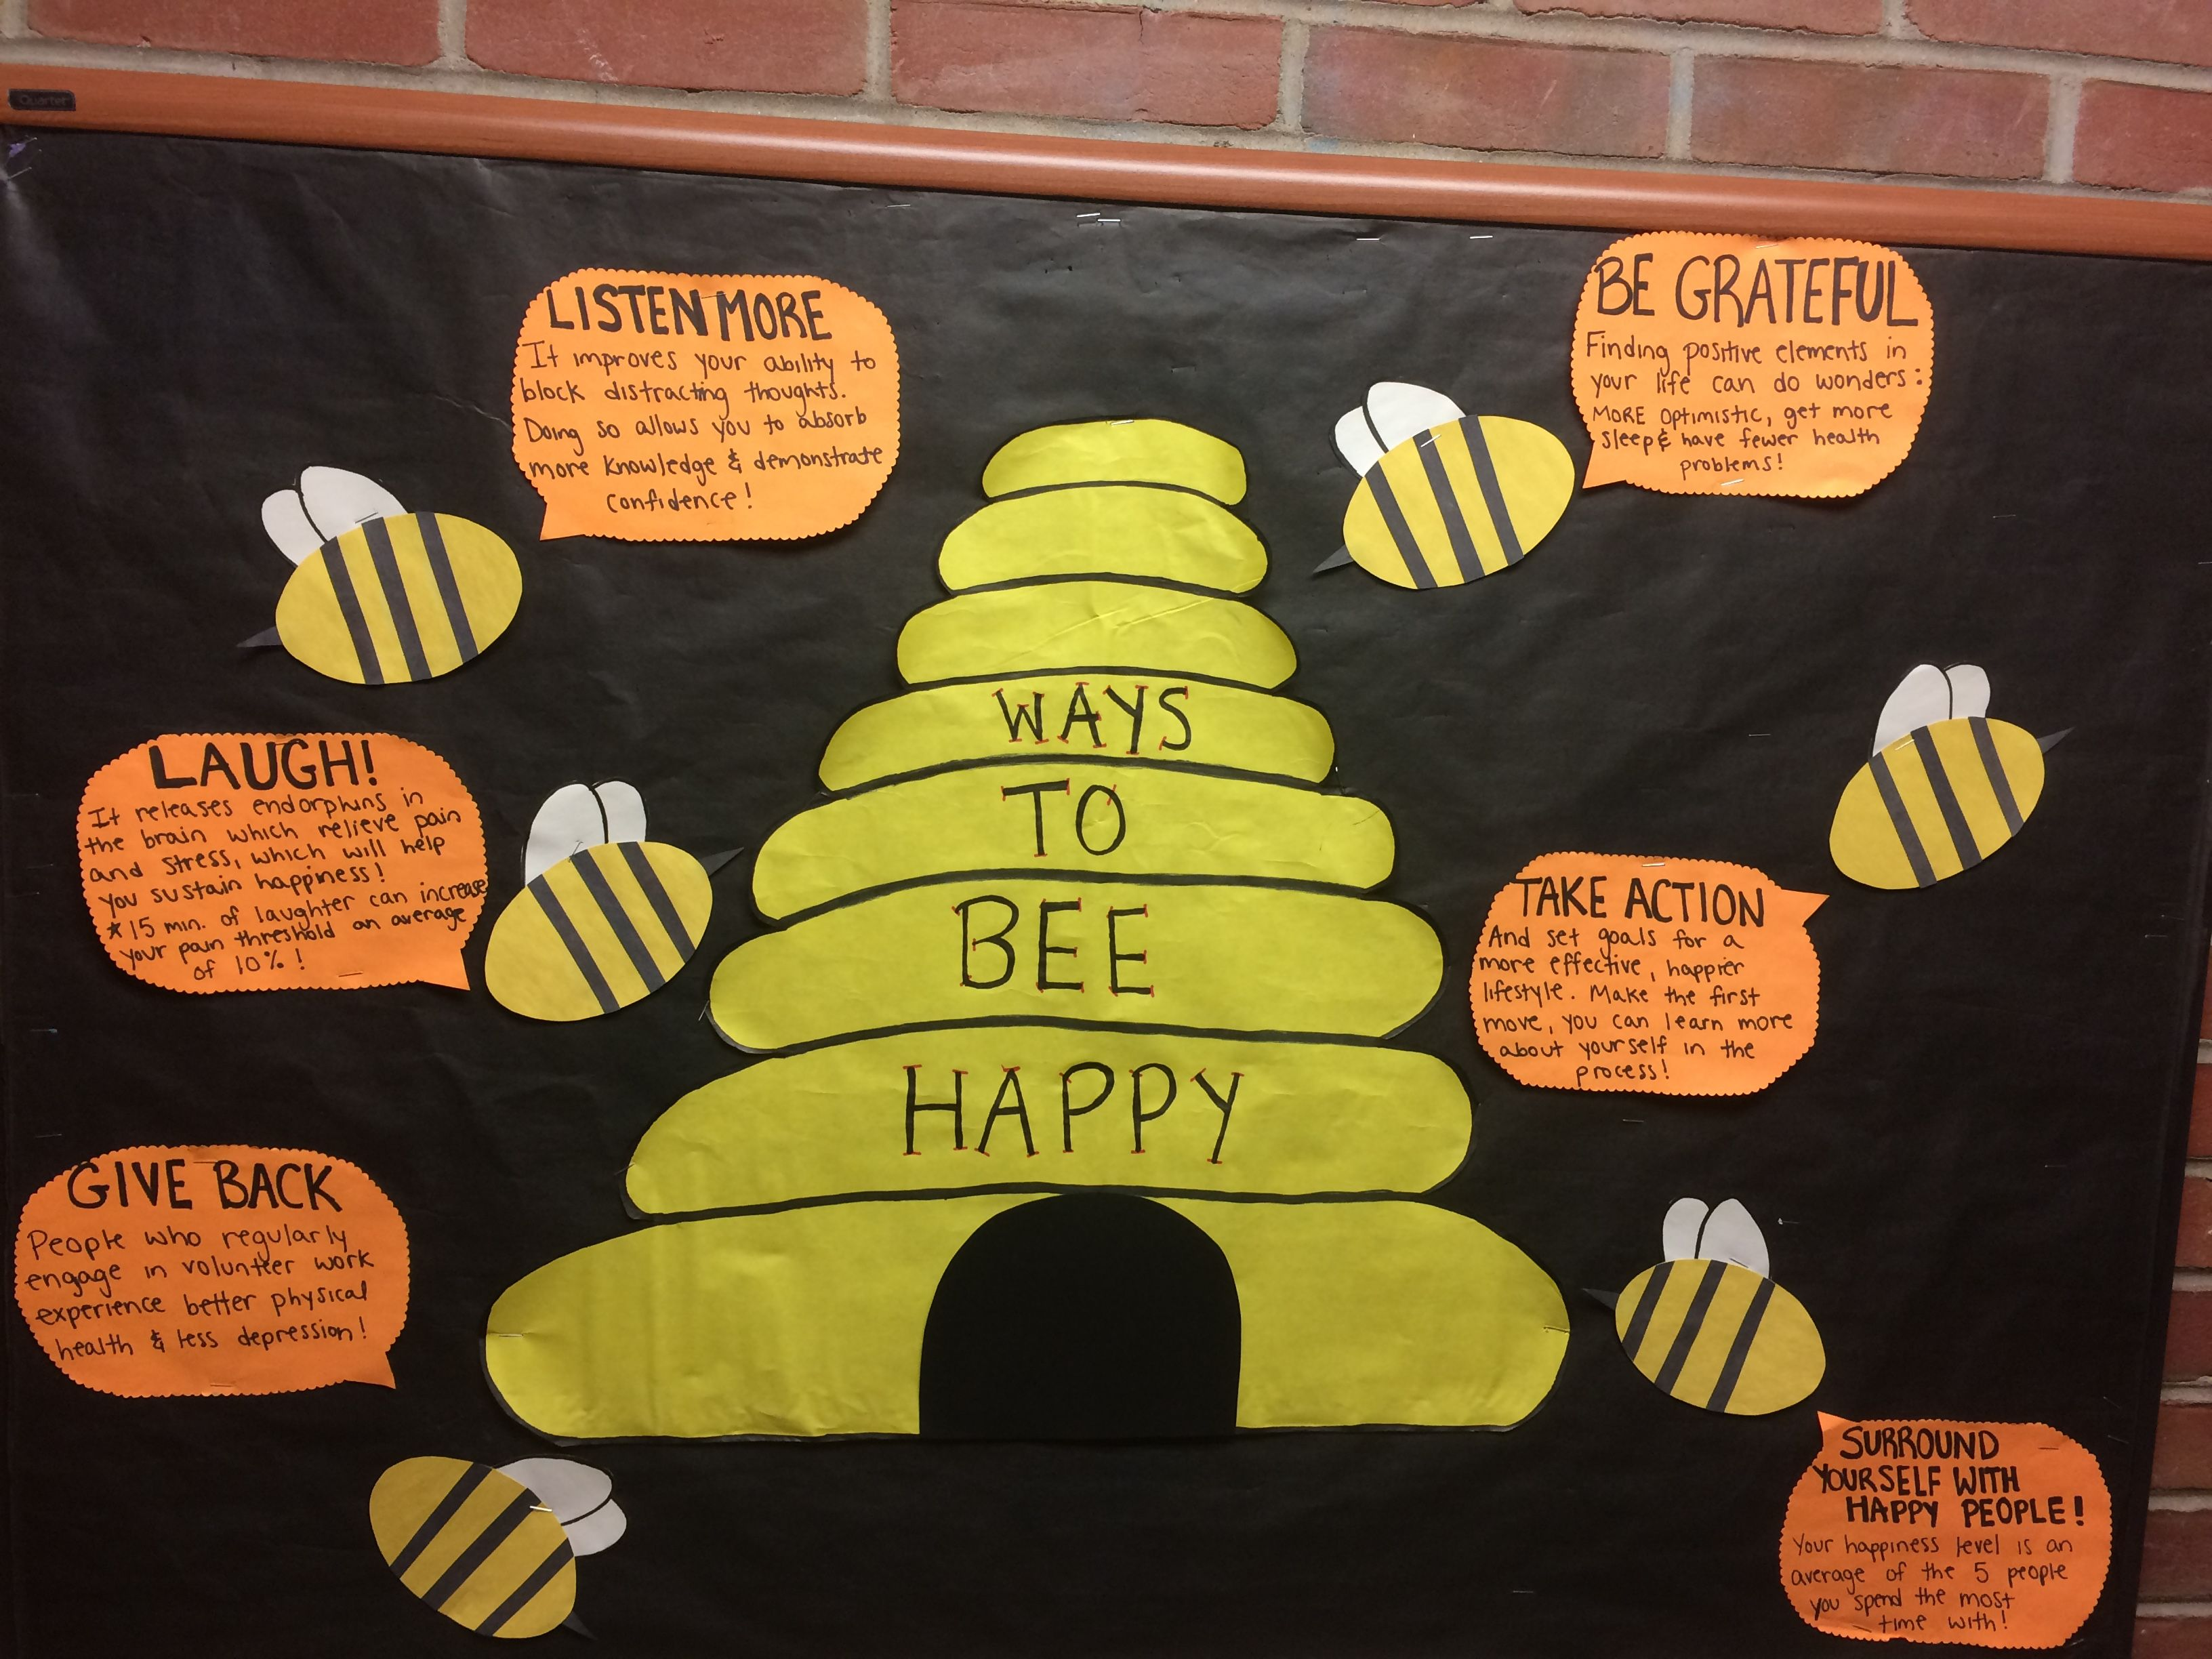 RA, CA, res life, college bulletin board, spring,